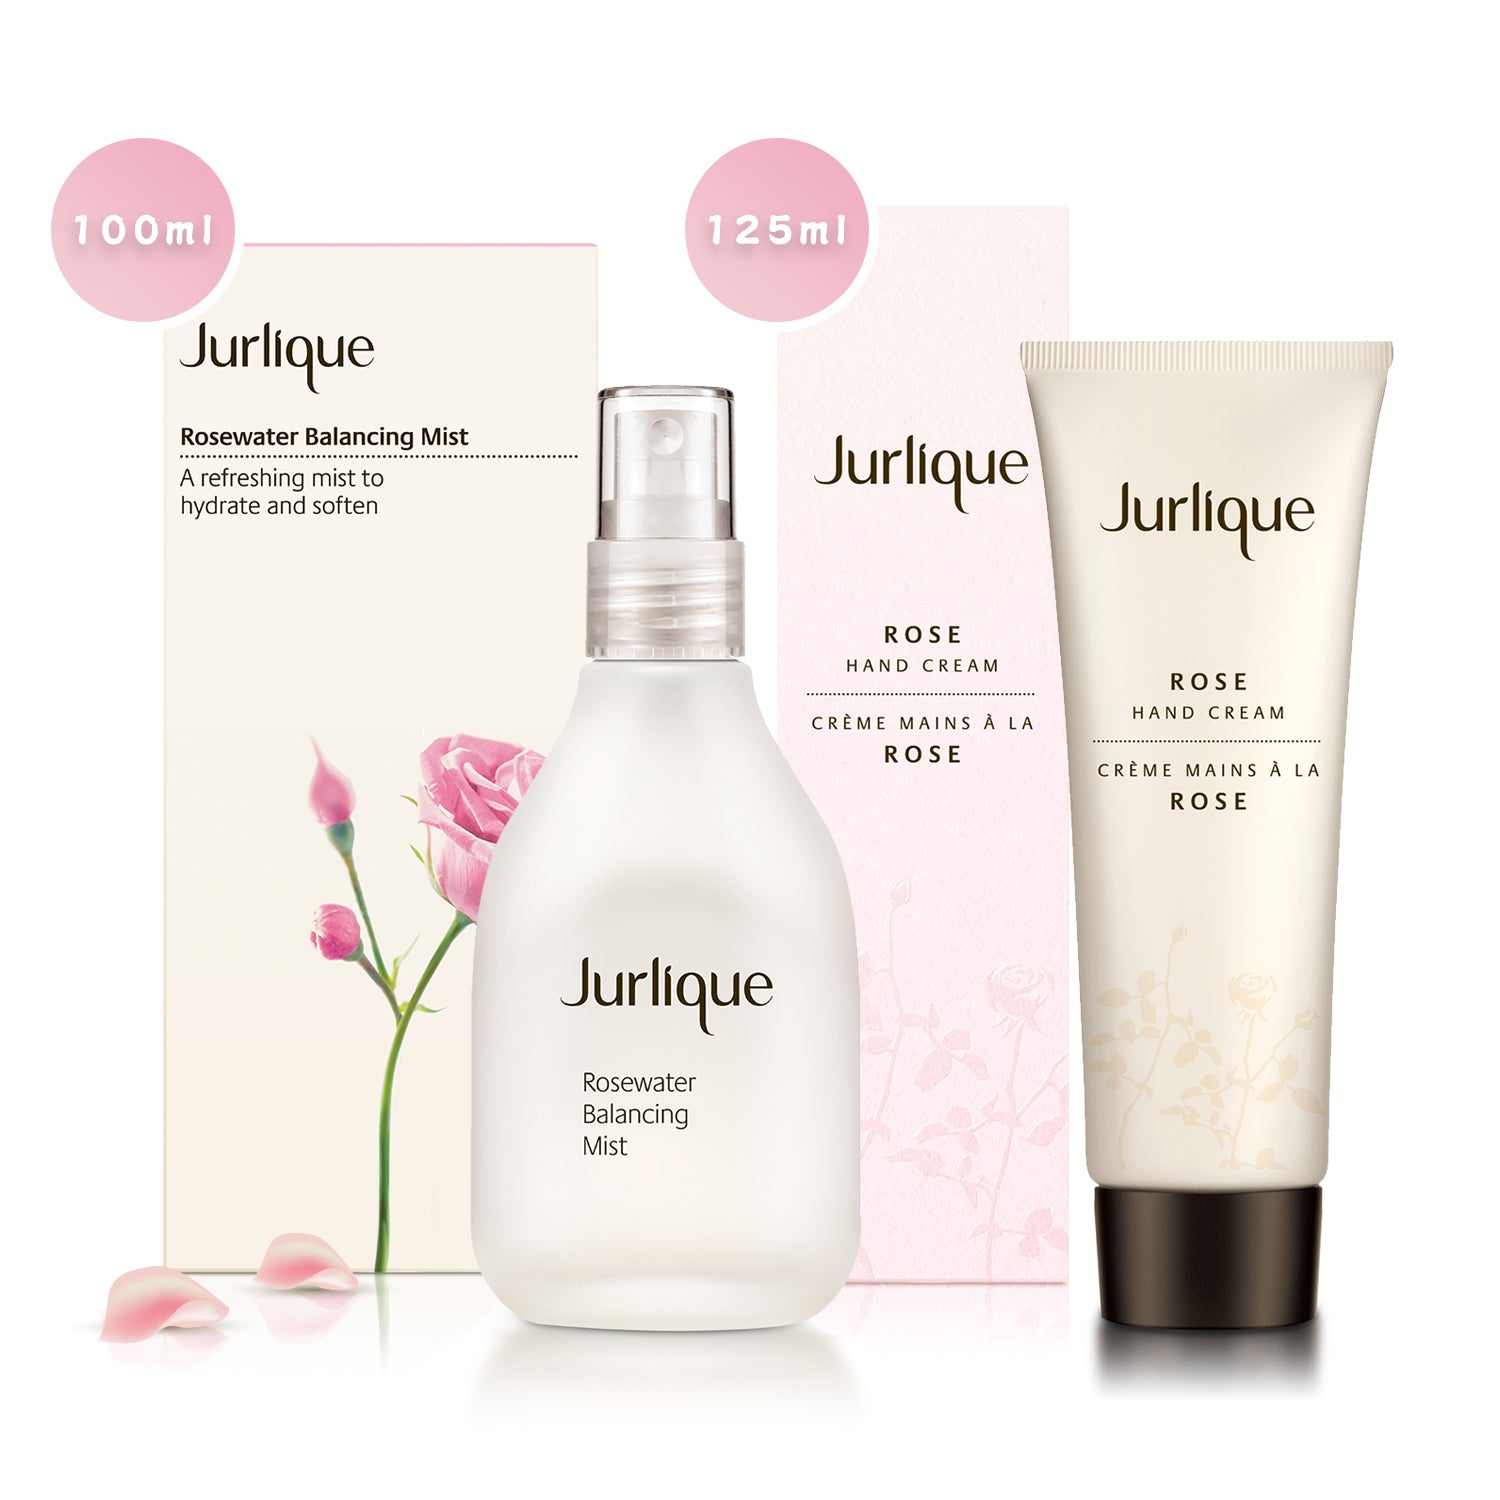 Jurlique Rosewater Balancing Mist 100ml (3.3oz.) + Rose Hand Cream 125ml (4.3oz.) [ FREE SHIPPING ]